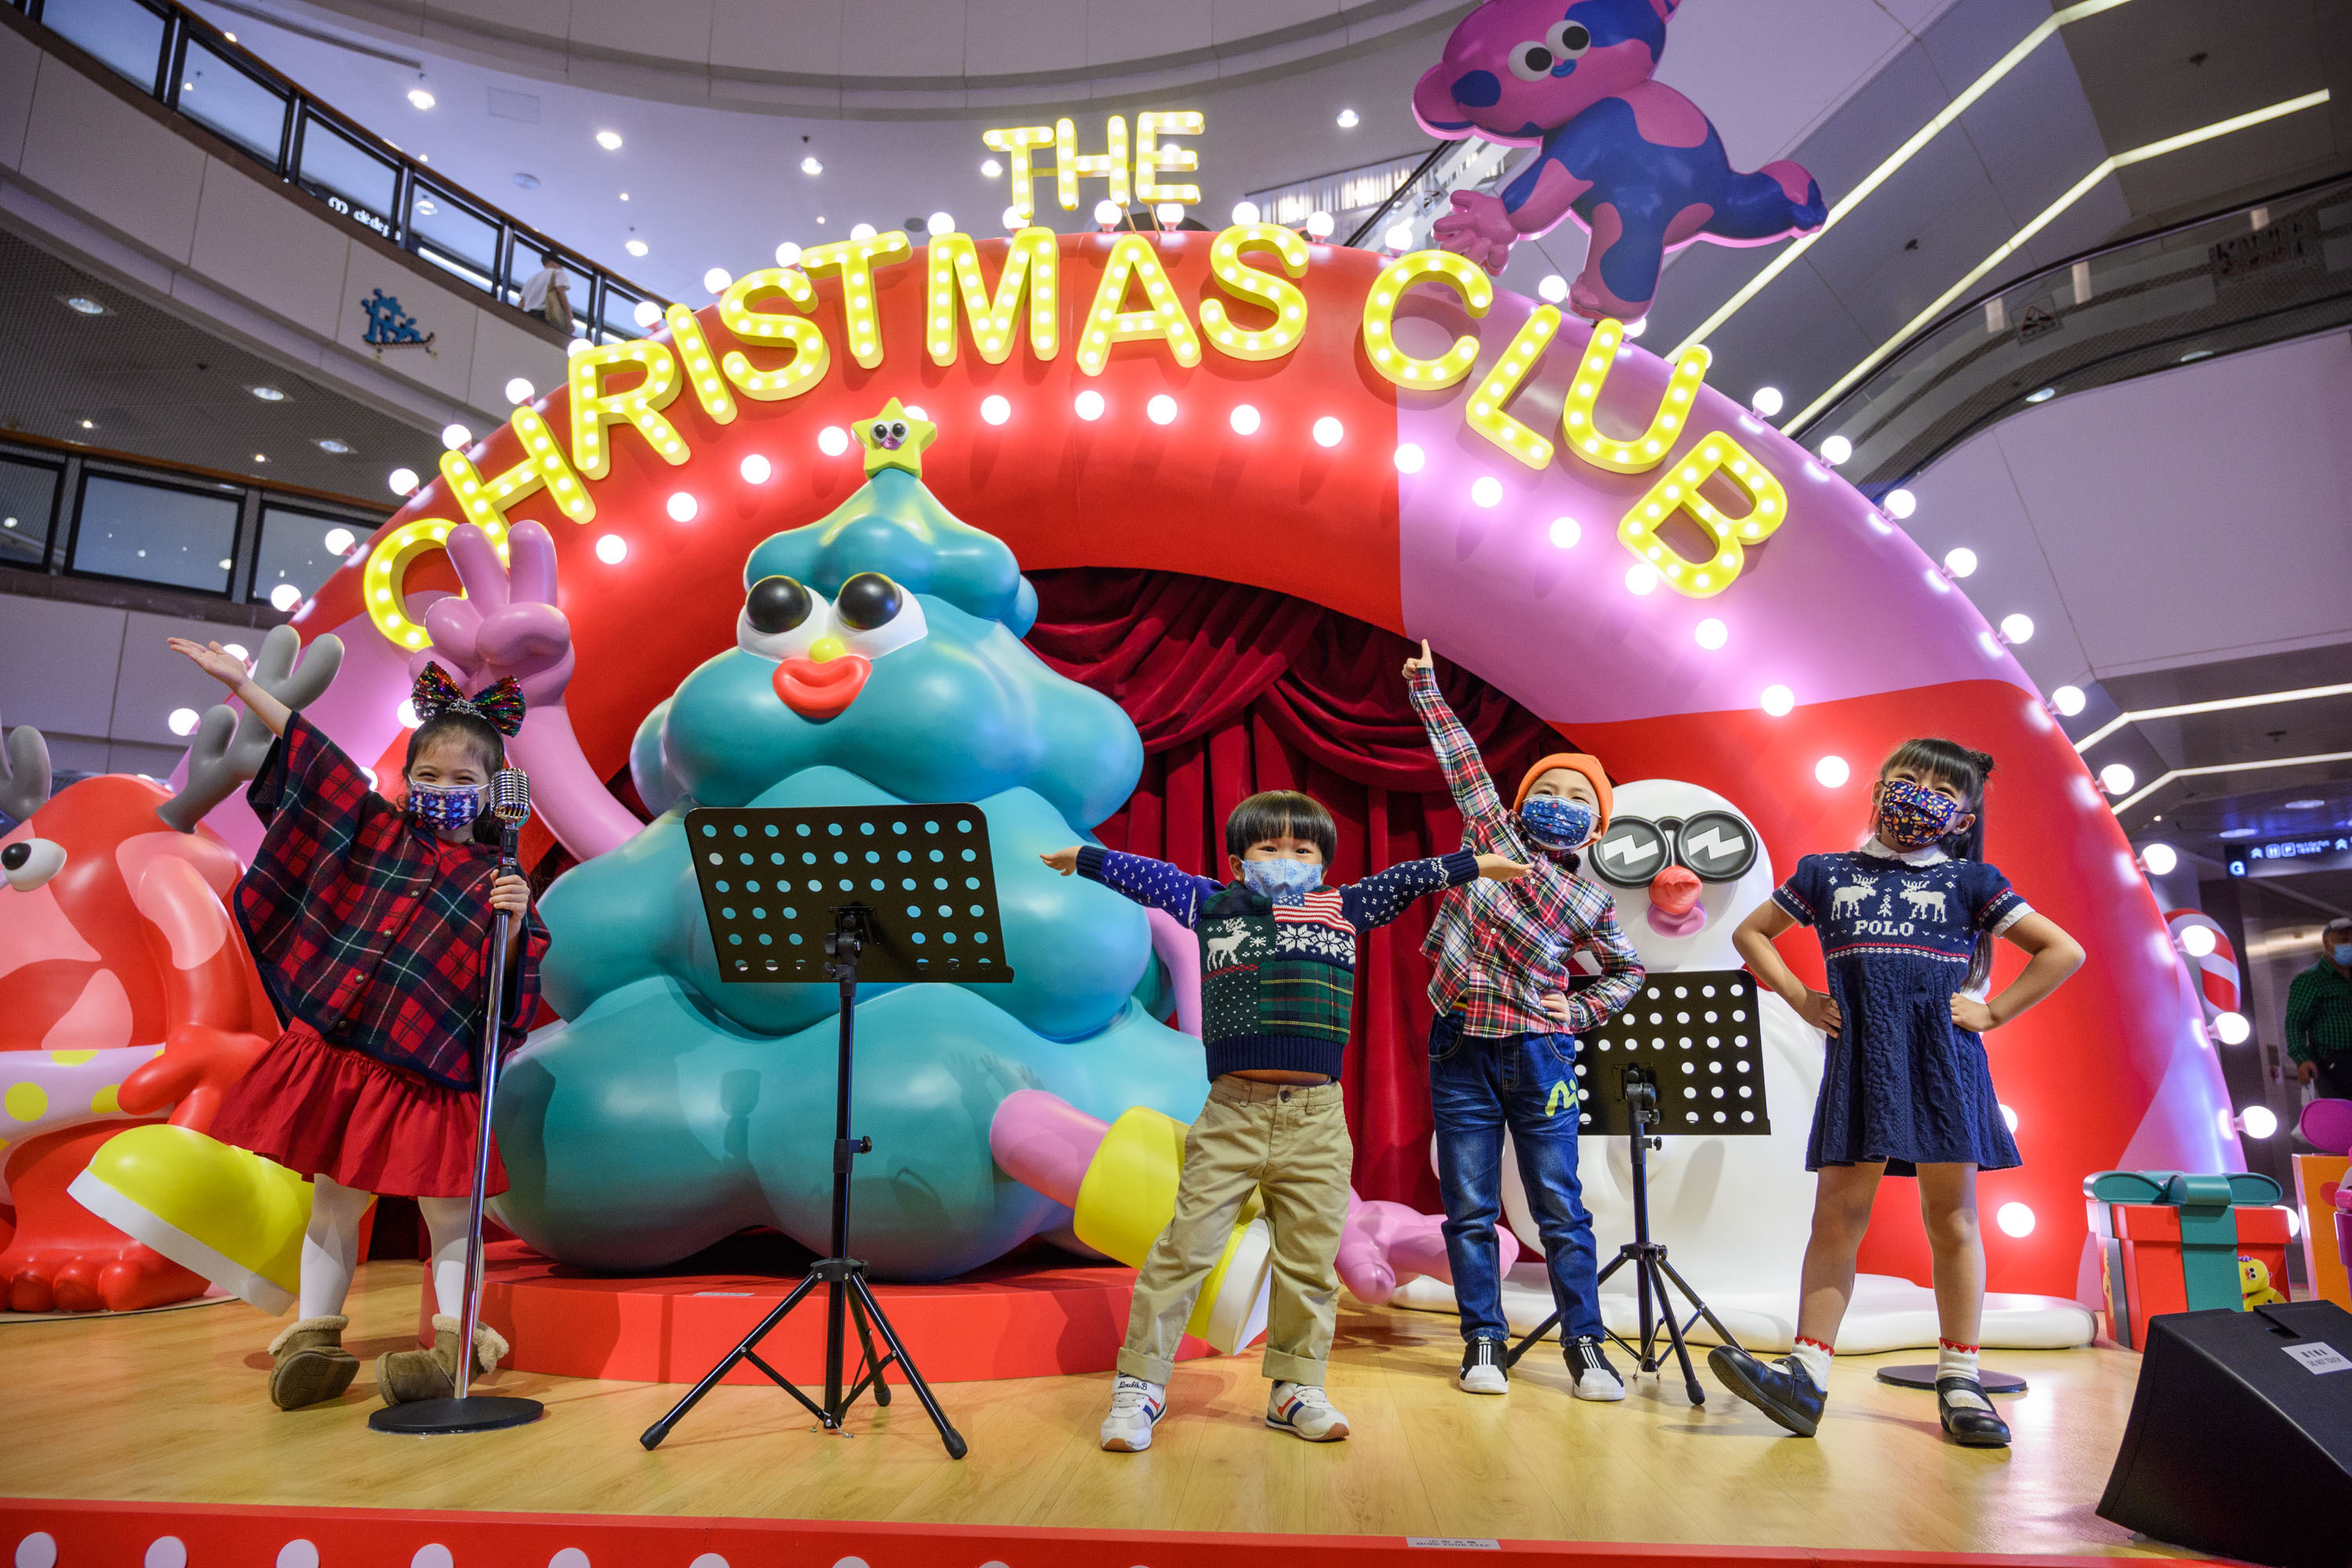 The Christmas Club at Harbour City